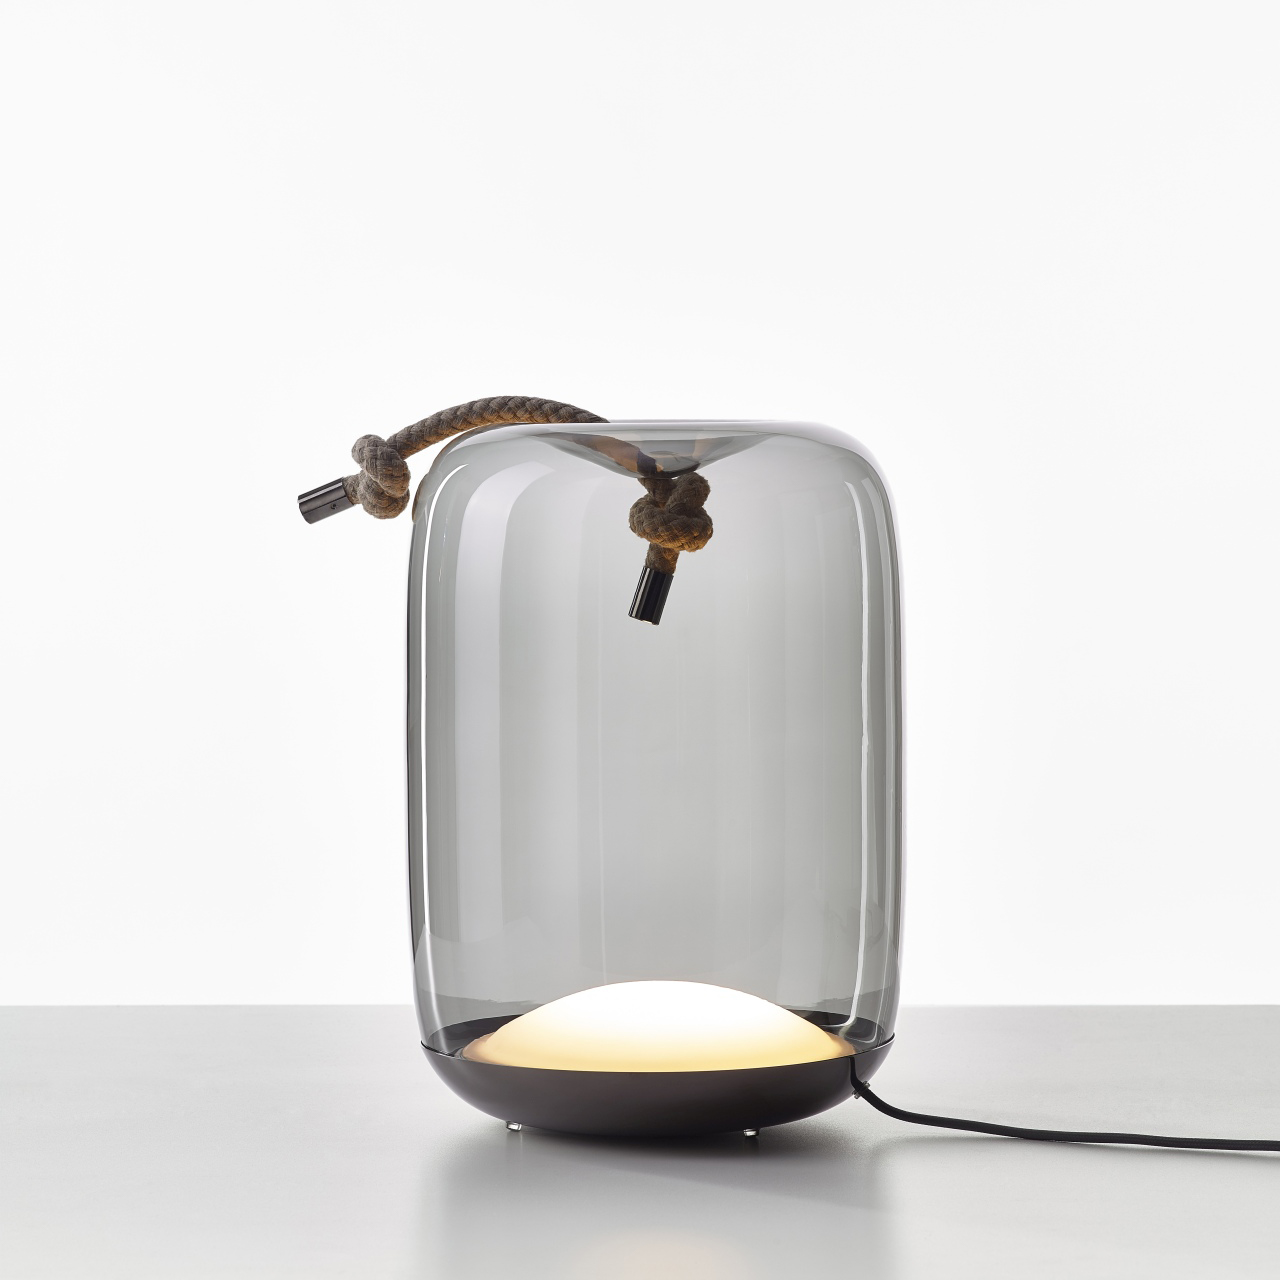 Knot table lamp by Brokis